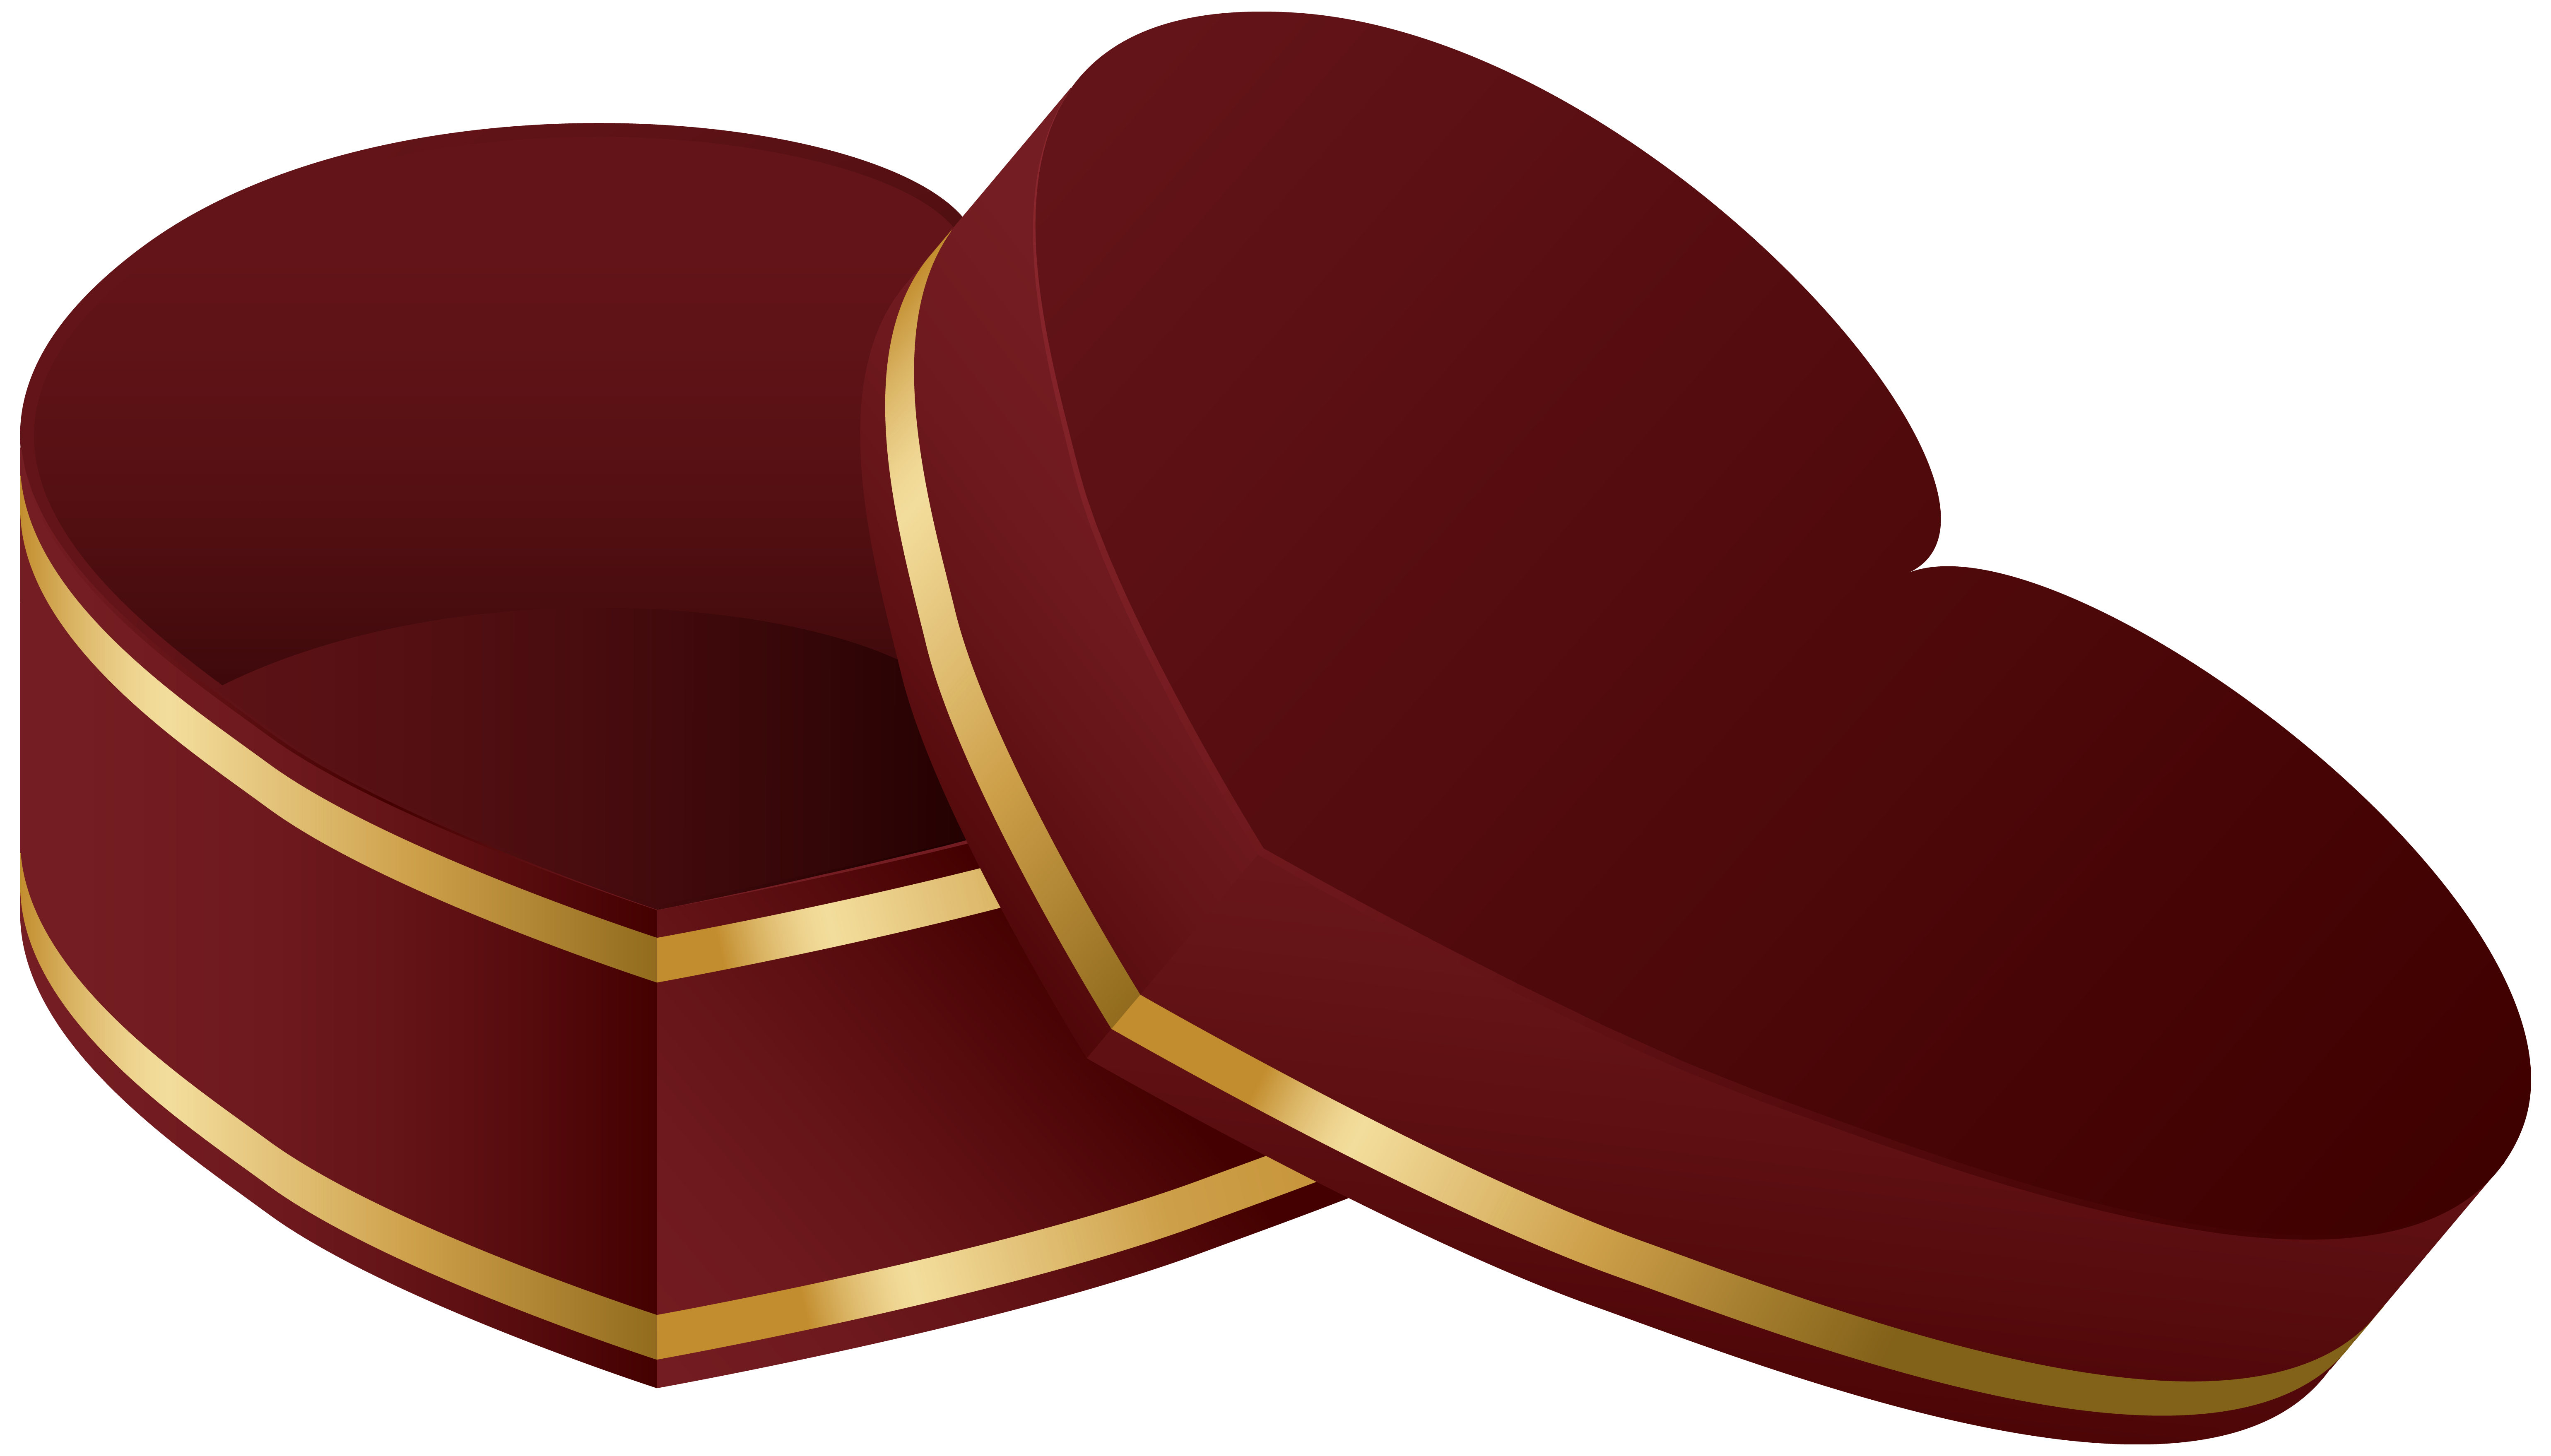 Wheat clipart heart. Red and gold open